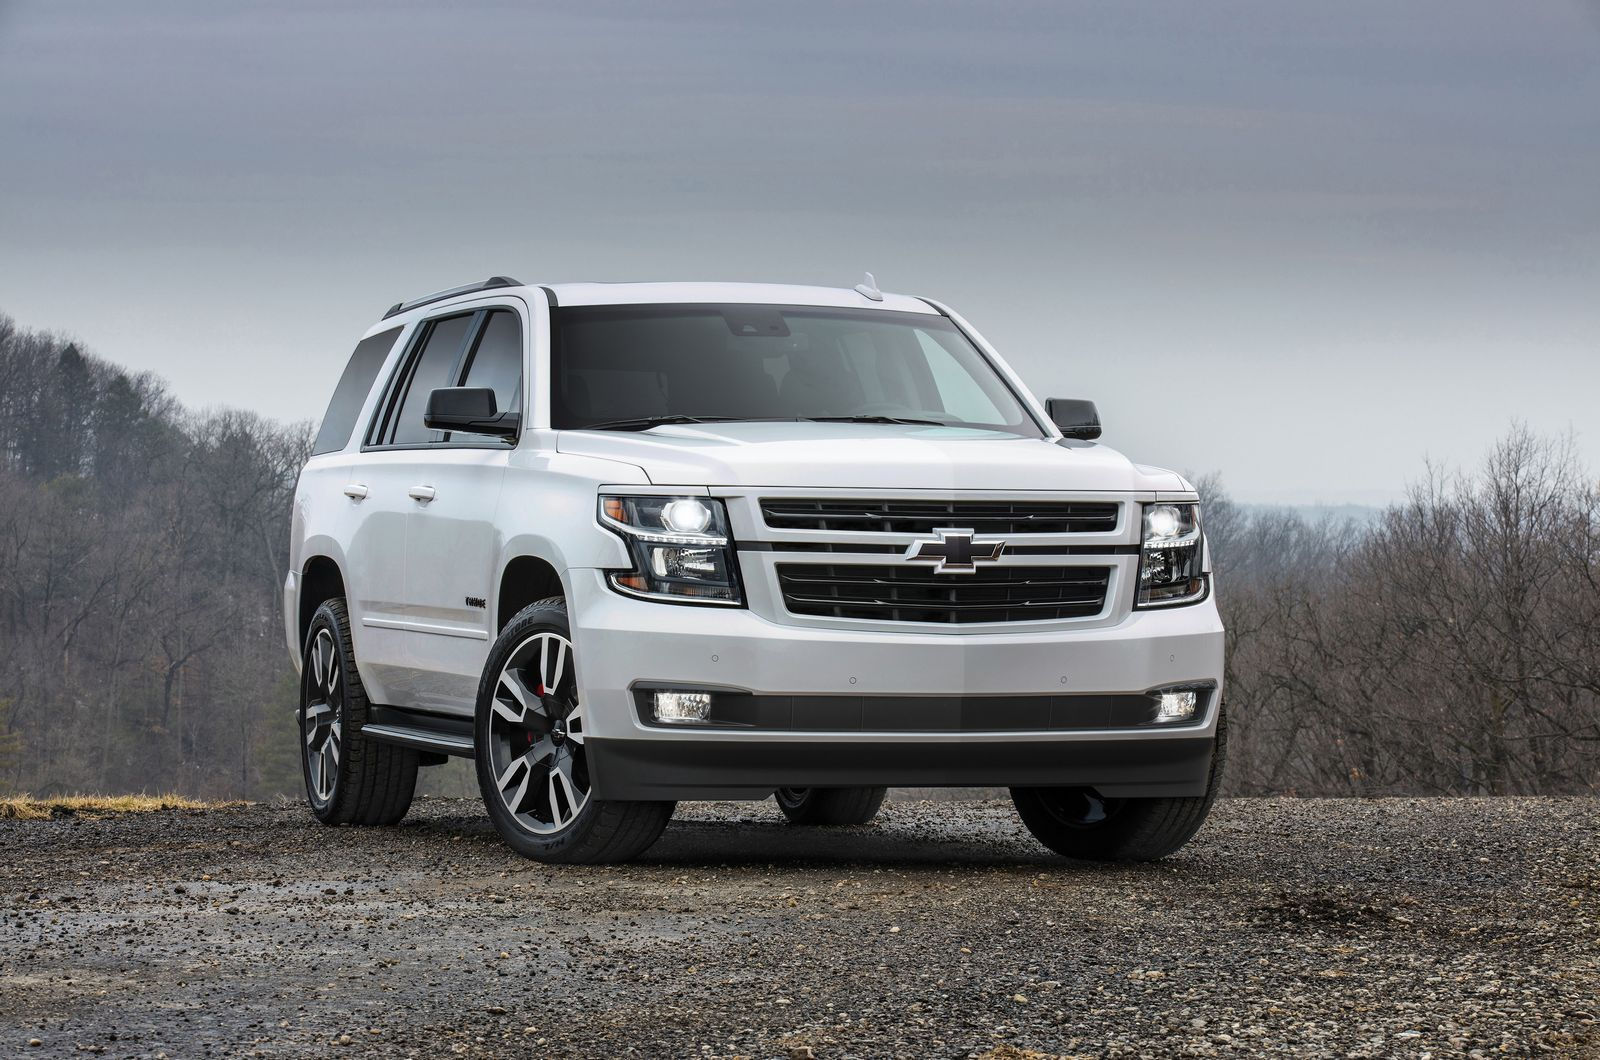 2018 Chevrolet Tahoe Rst Quick Spin Review سيارات Chevrolet